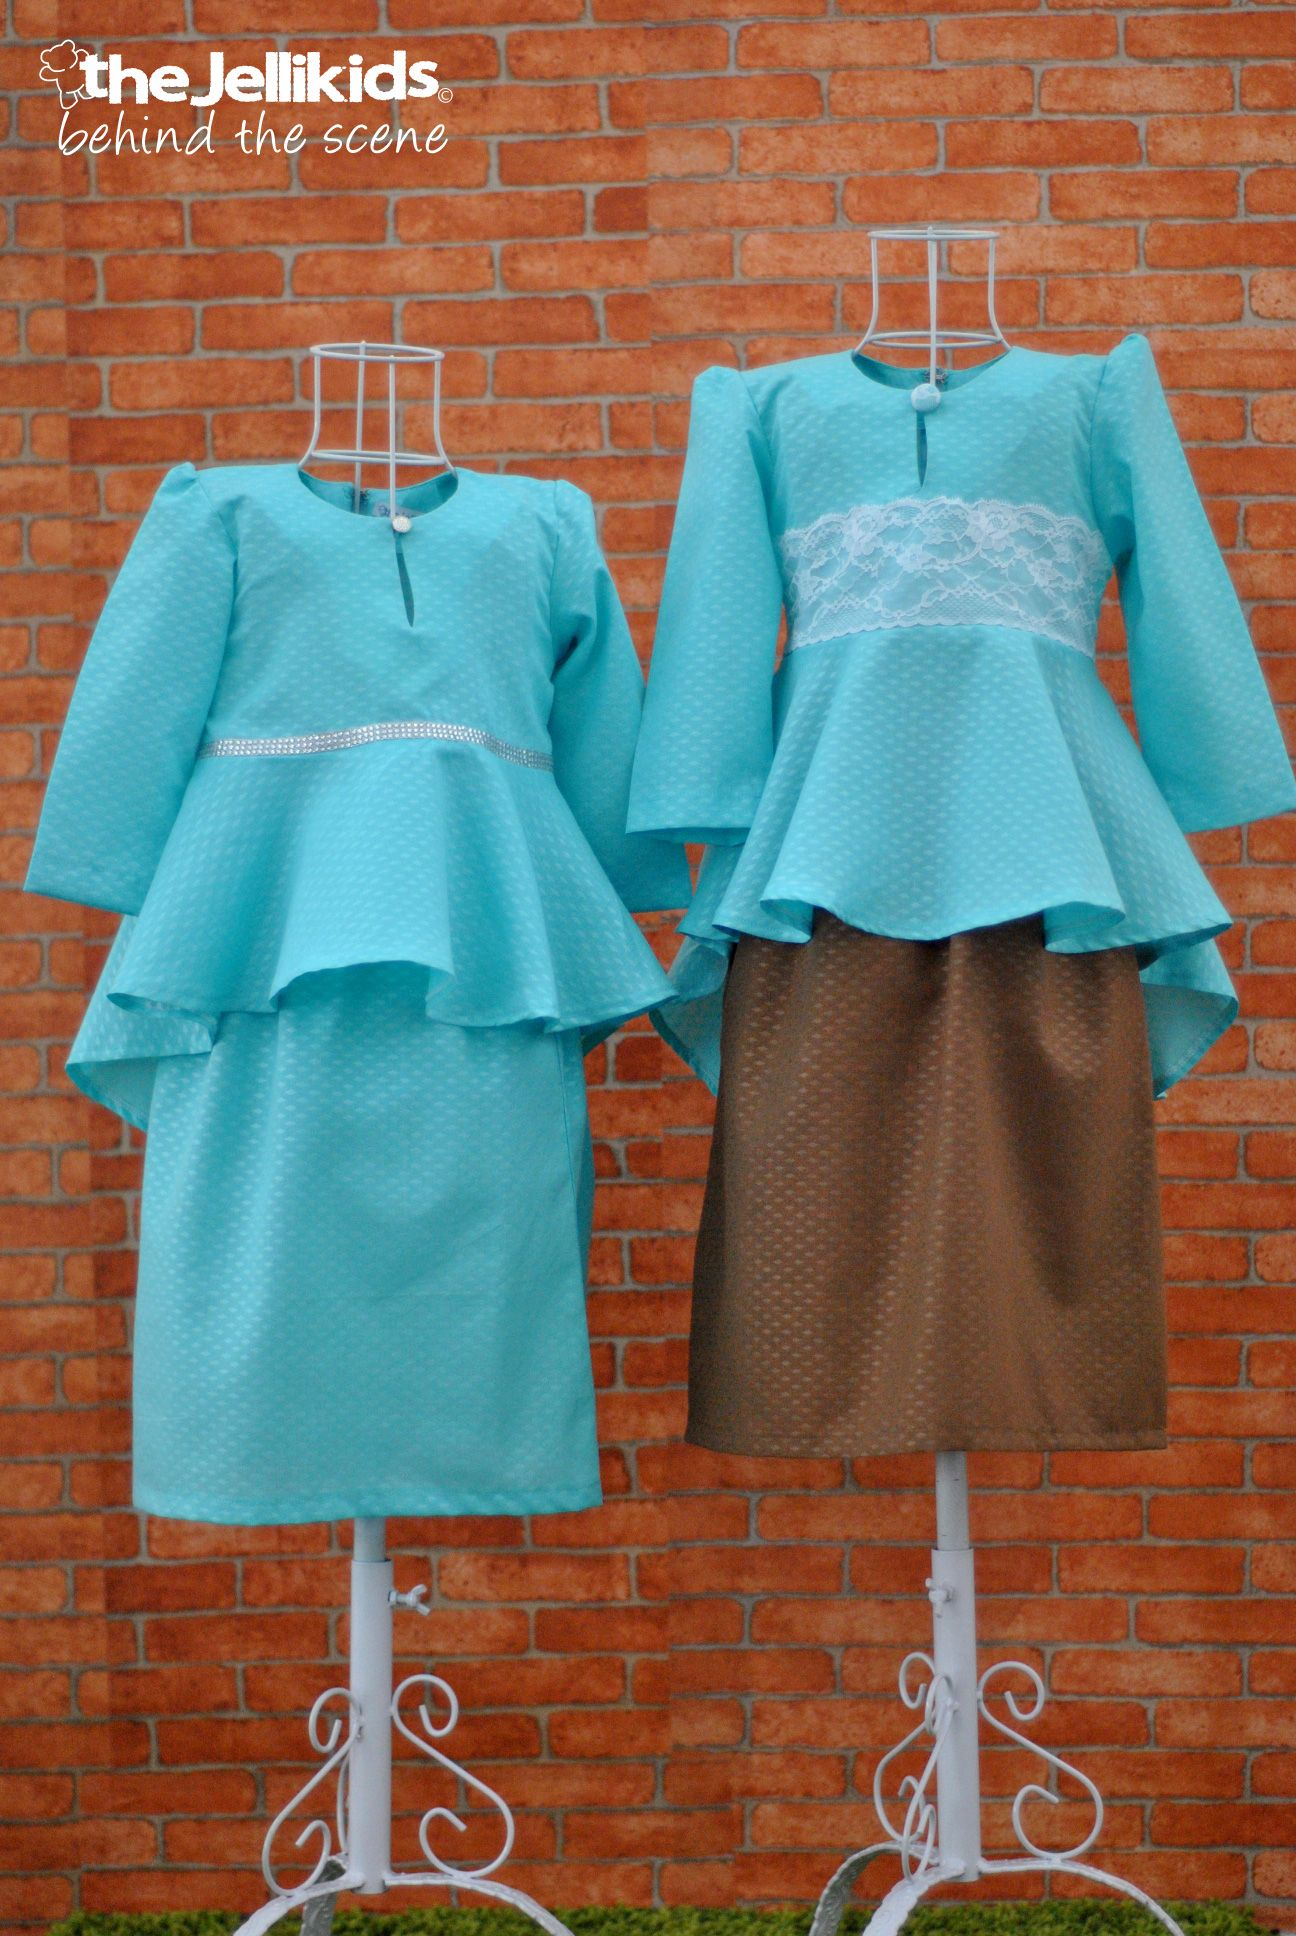 The Peplum Kurungs in Tiffany Blue. Kebaya Anak a5e968ecd8